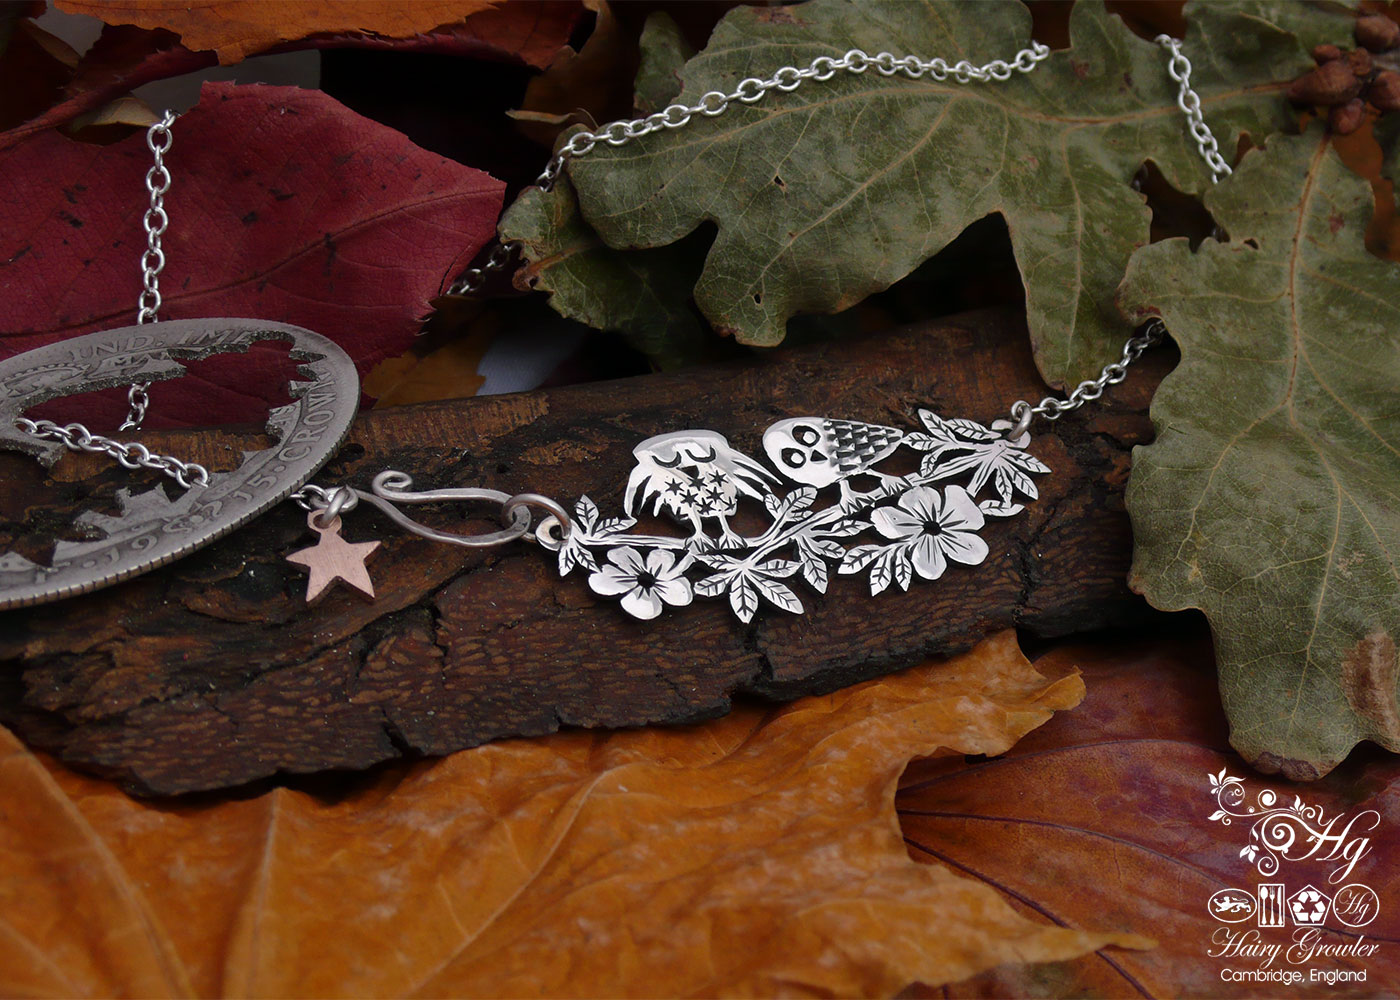 Handcrafted and recycled sterling silver 'Sleepy & Wee' owl necklace